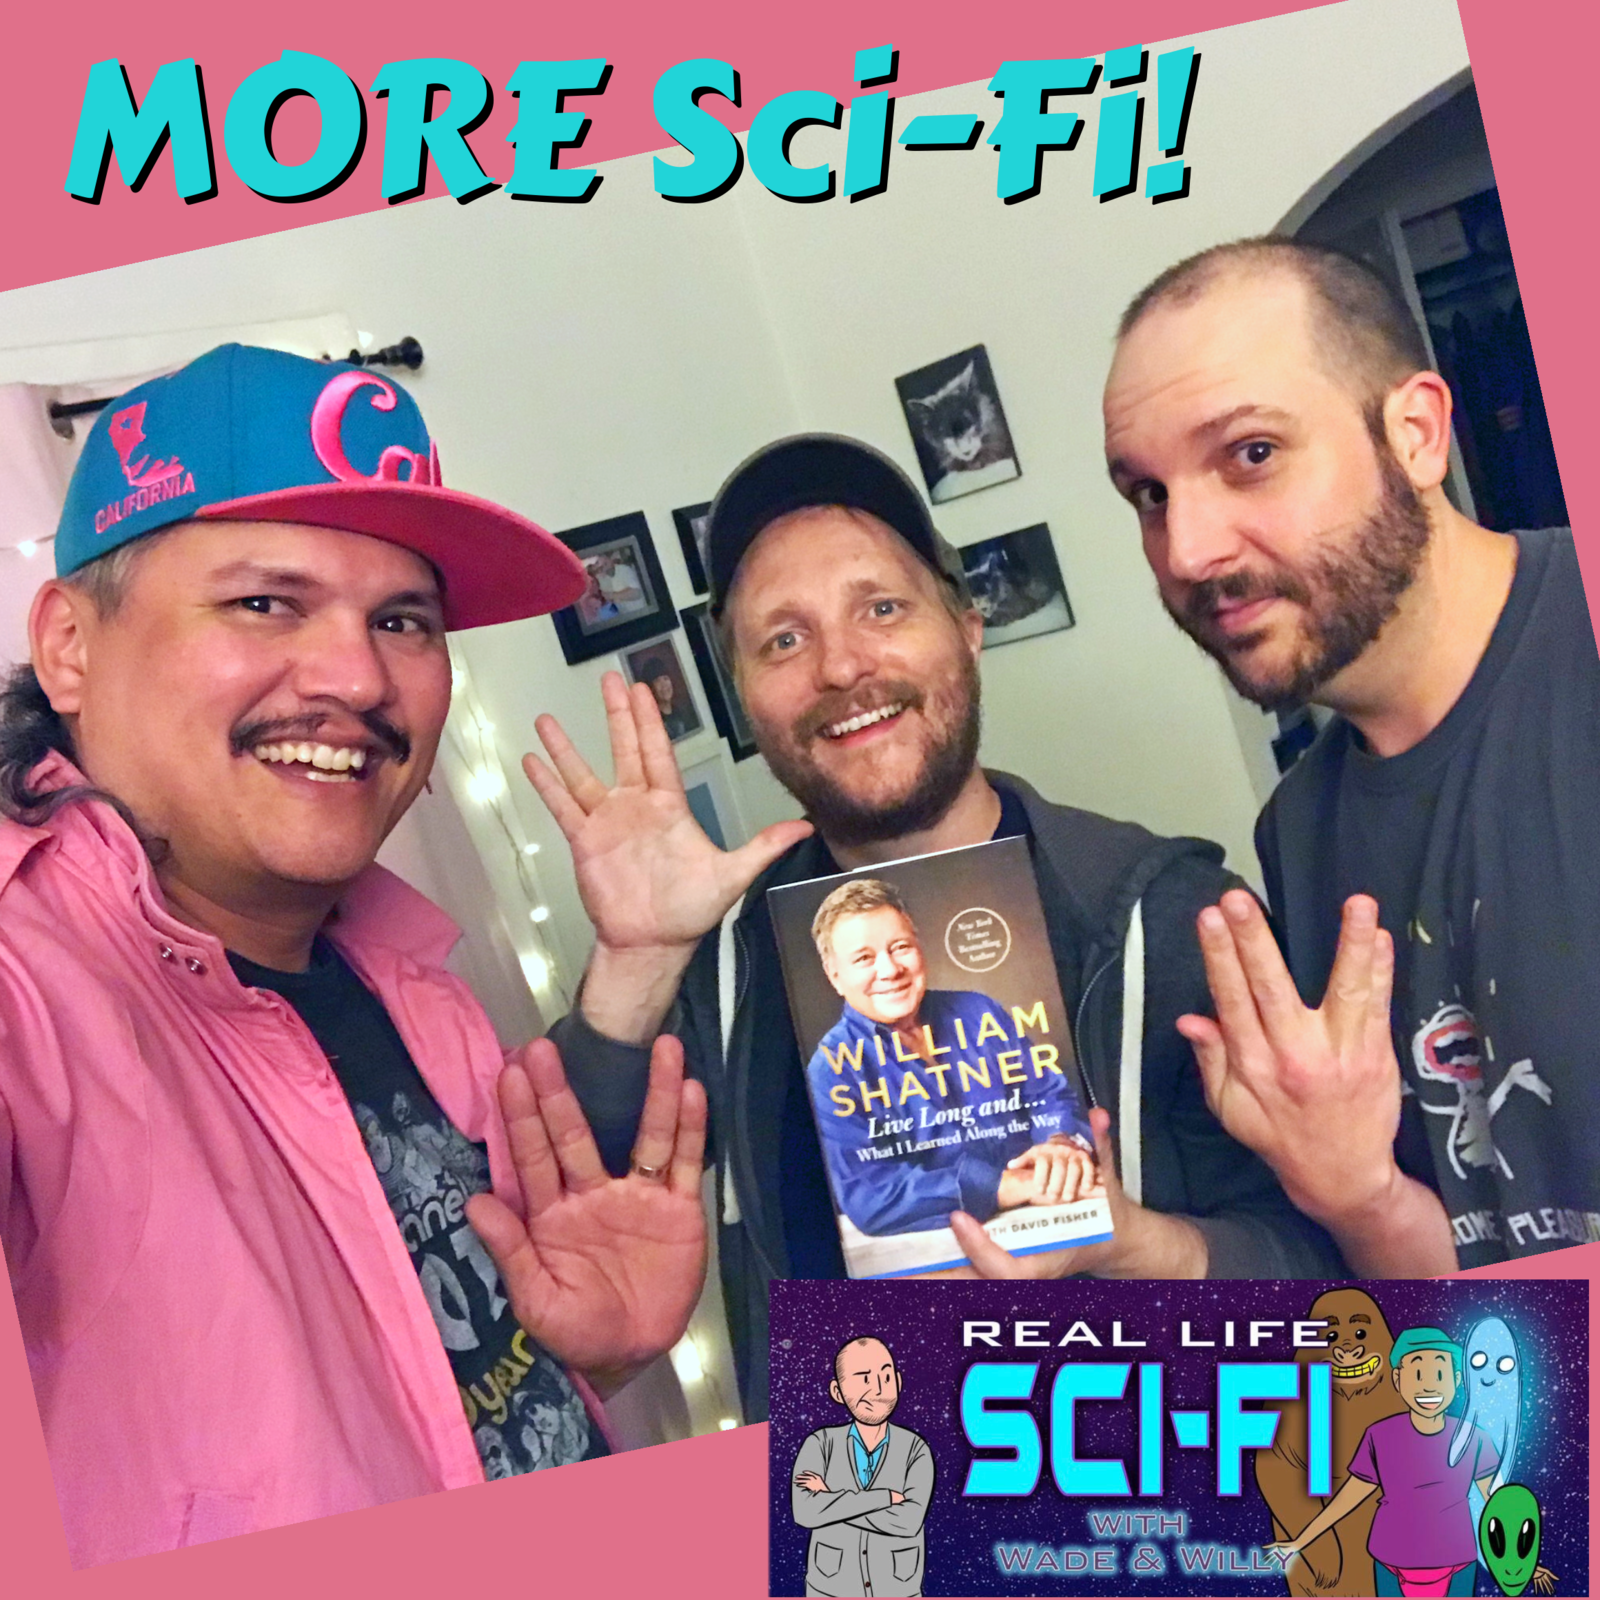 203: Bonus Patreon Freebie - Real Life More Sci-Fi with Aaron Moles - William Shatner continued